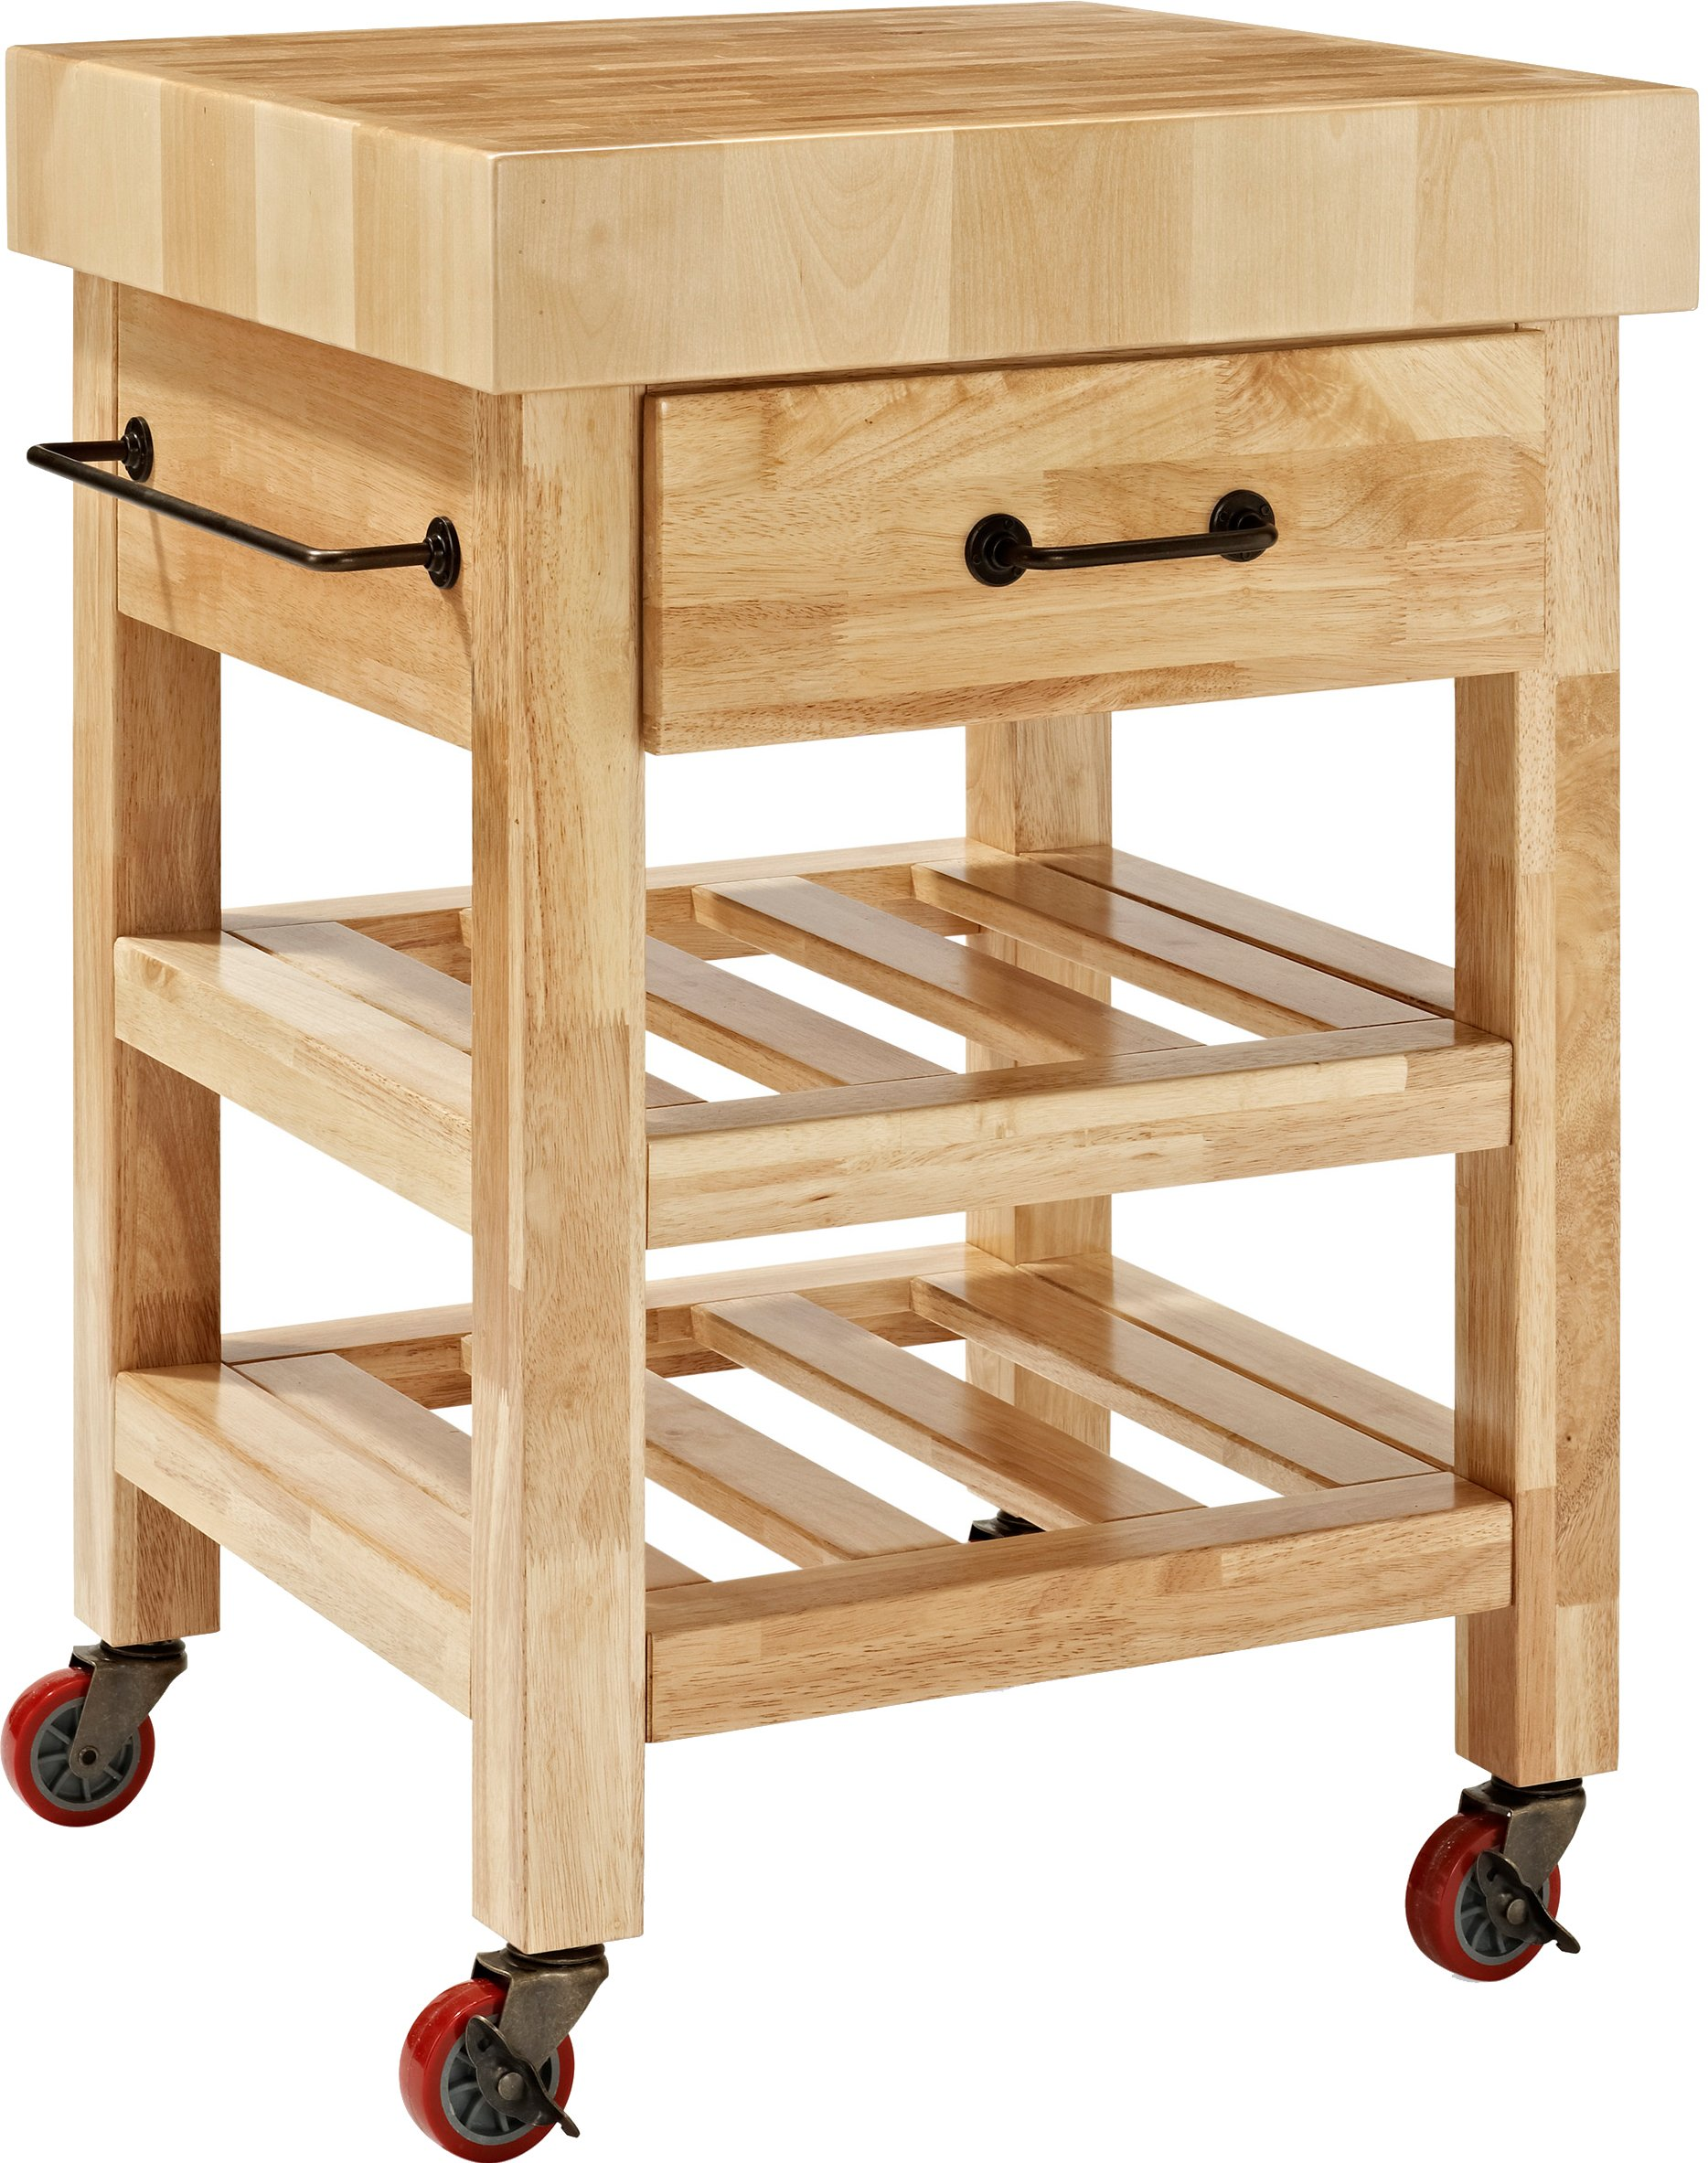 Crosley Furniture Marston Butcher Block Rolling Kitchen Cart - Natural